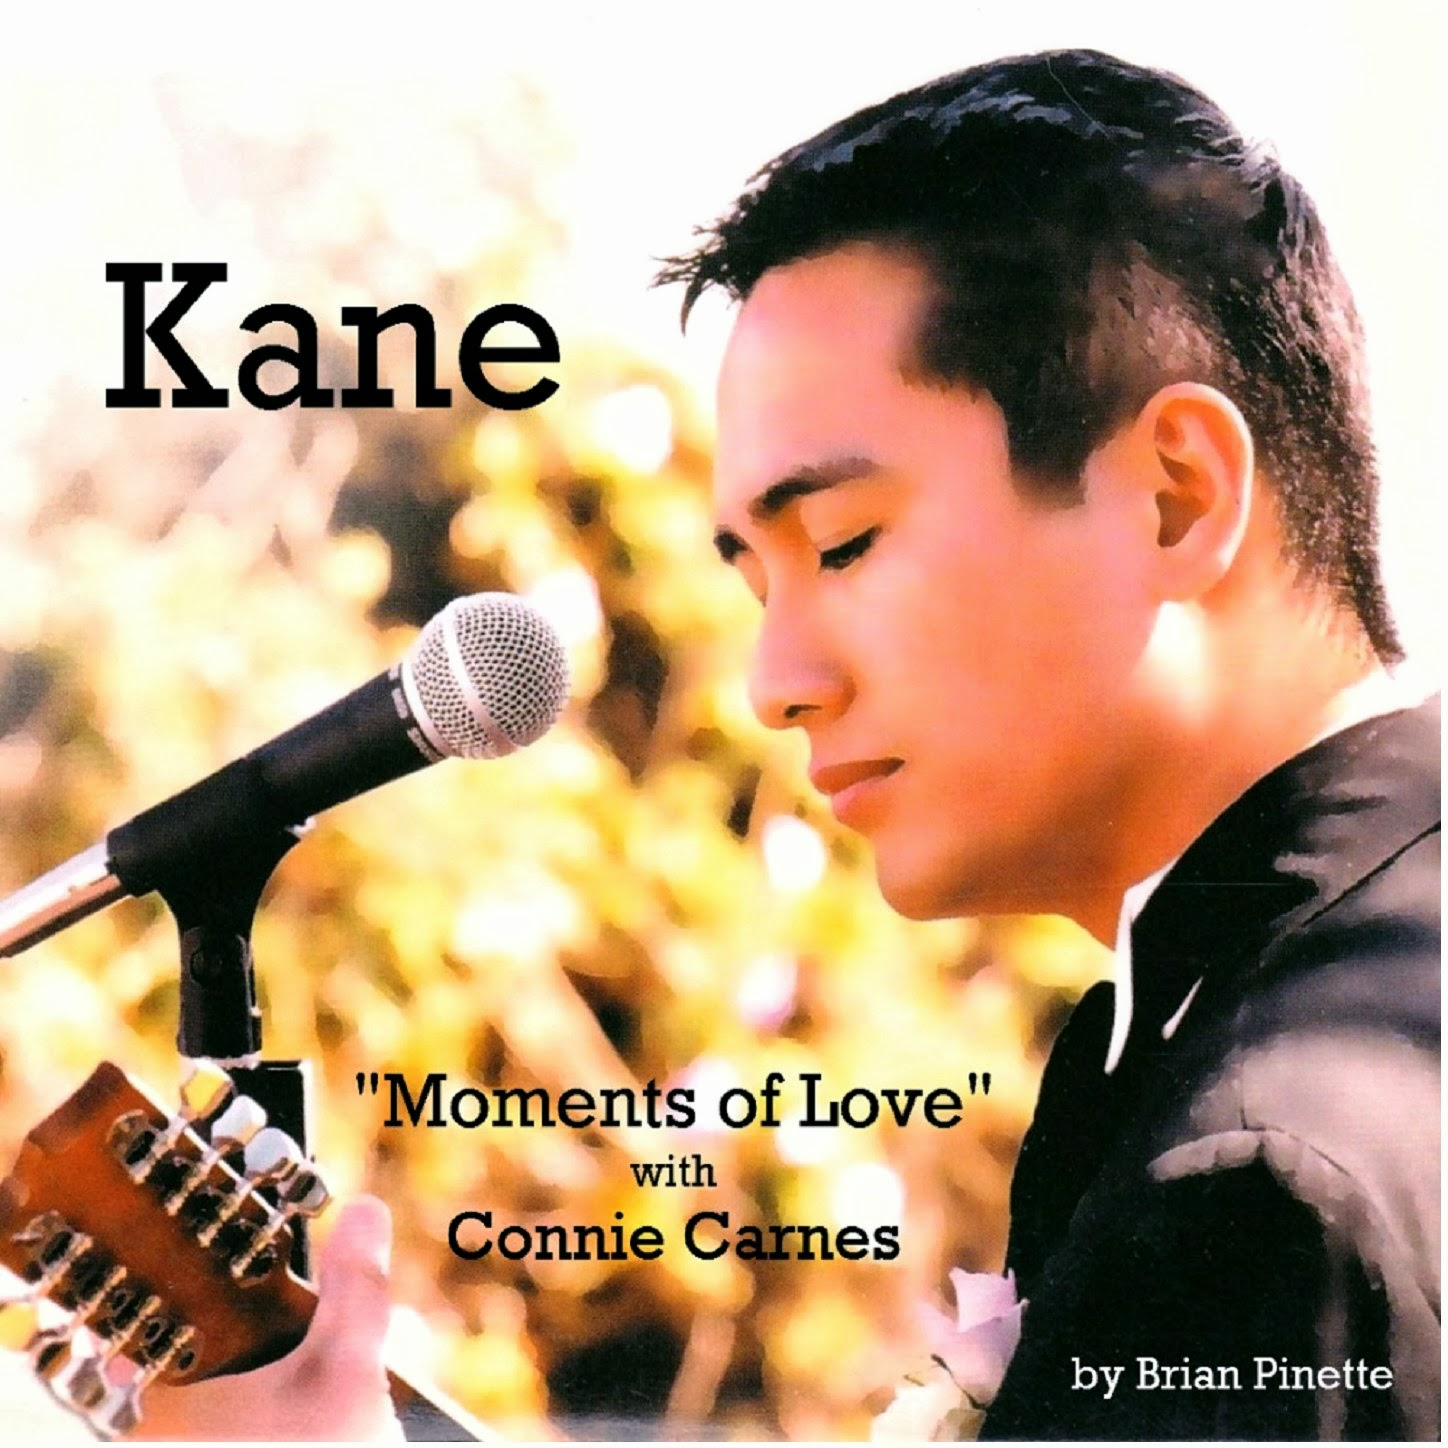 Kane sings Moments of Love with Connie Carnes by Brian Pinette mp3 album $1.98